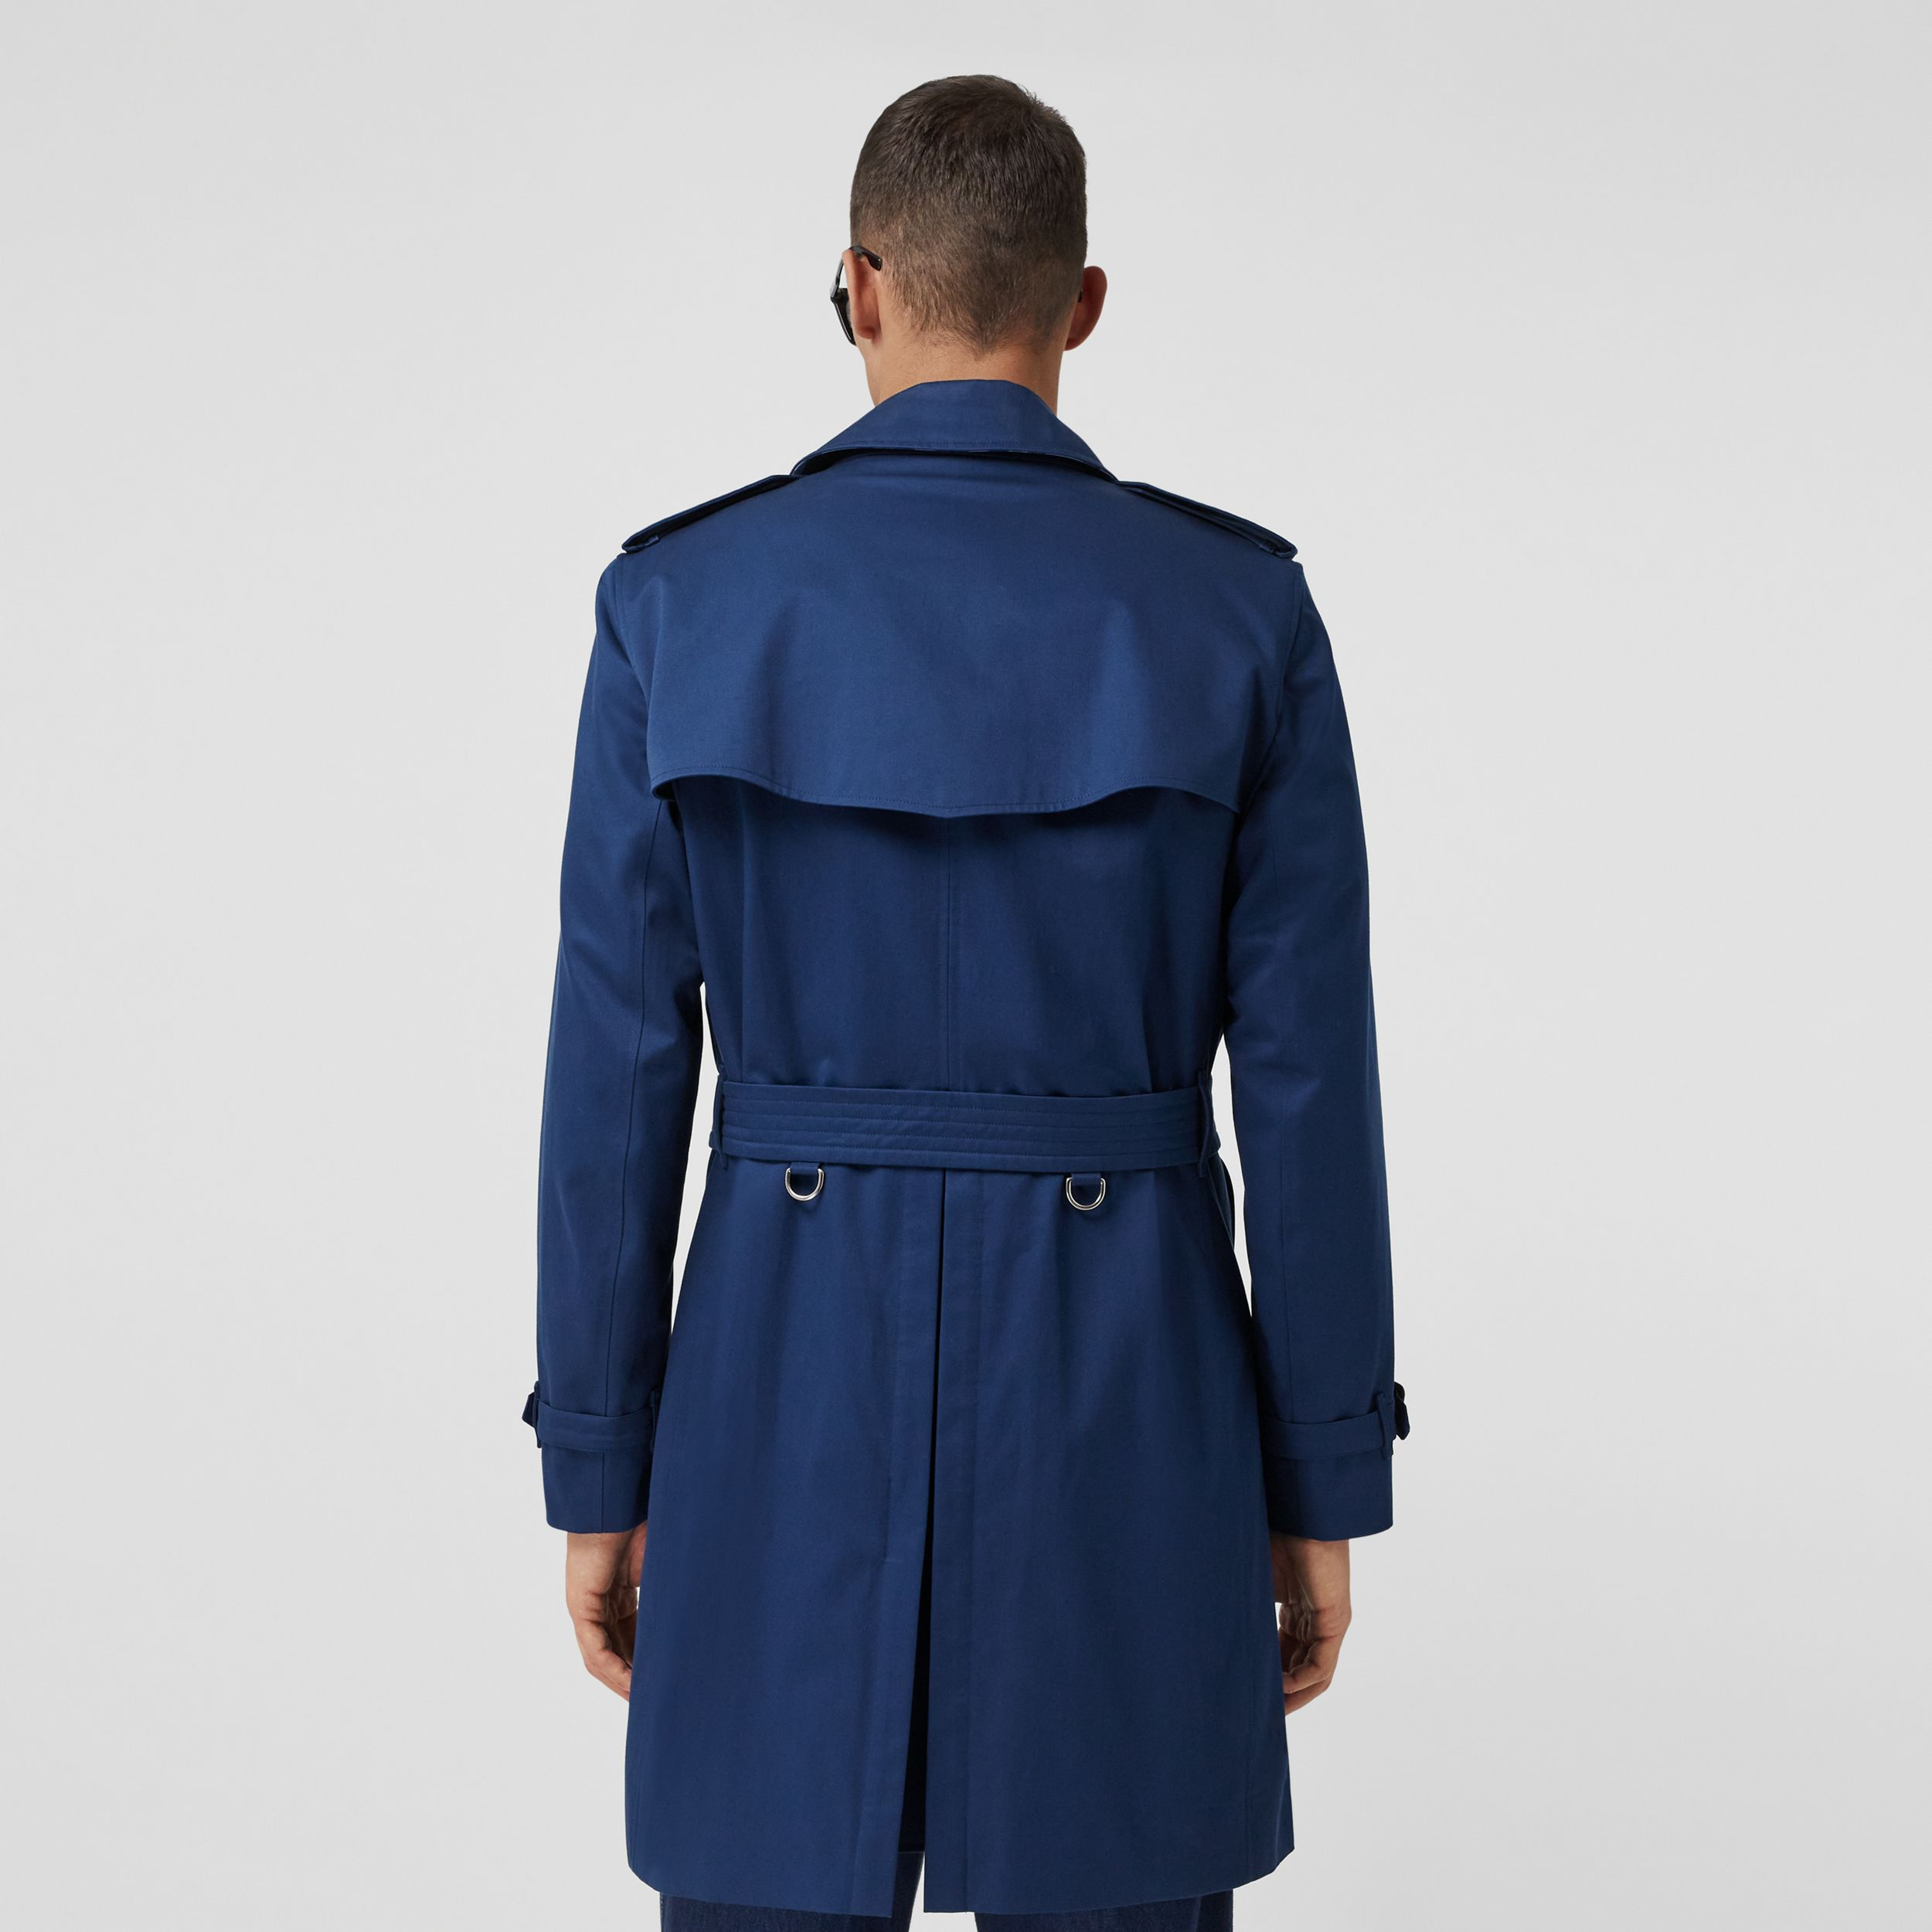 The Mid-length Kensington Trench Coat in Ink Blue - Men | Burberry - 3